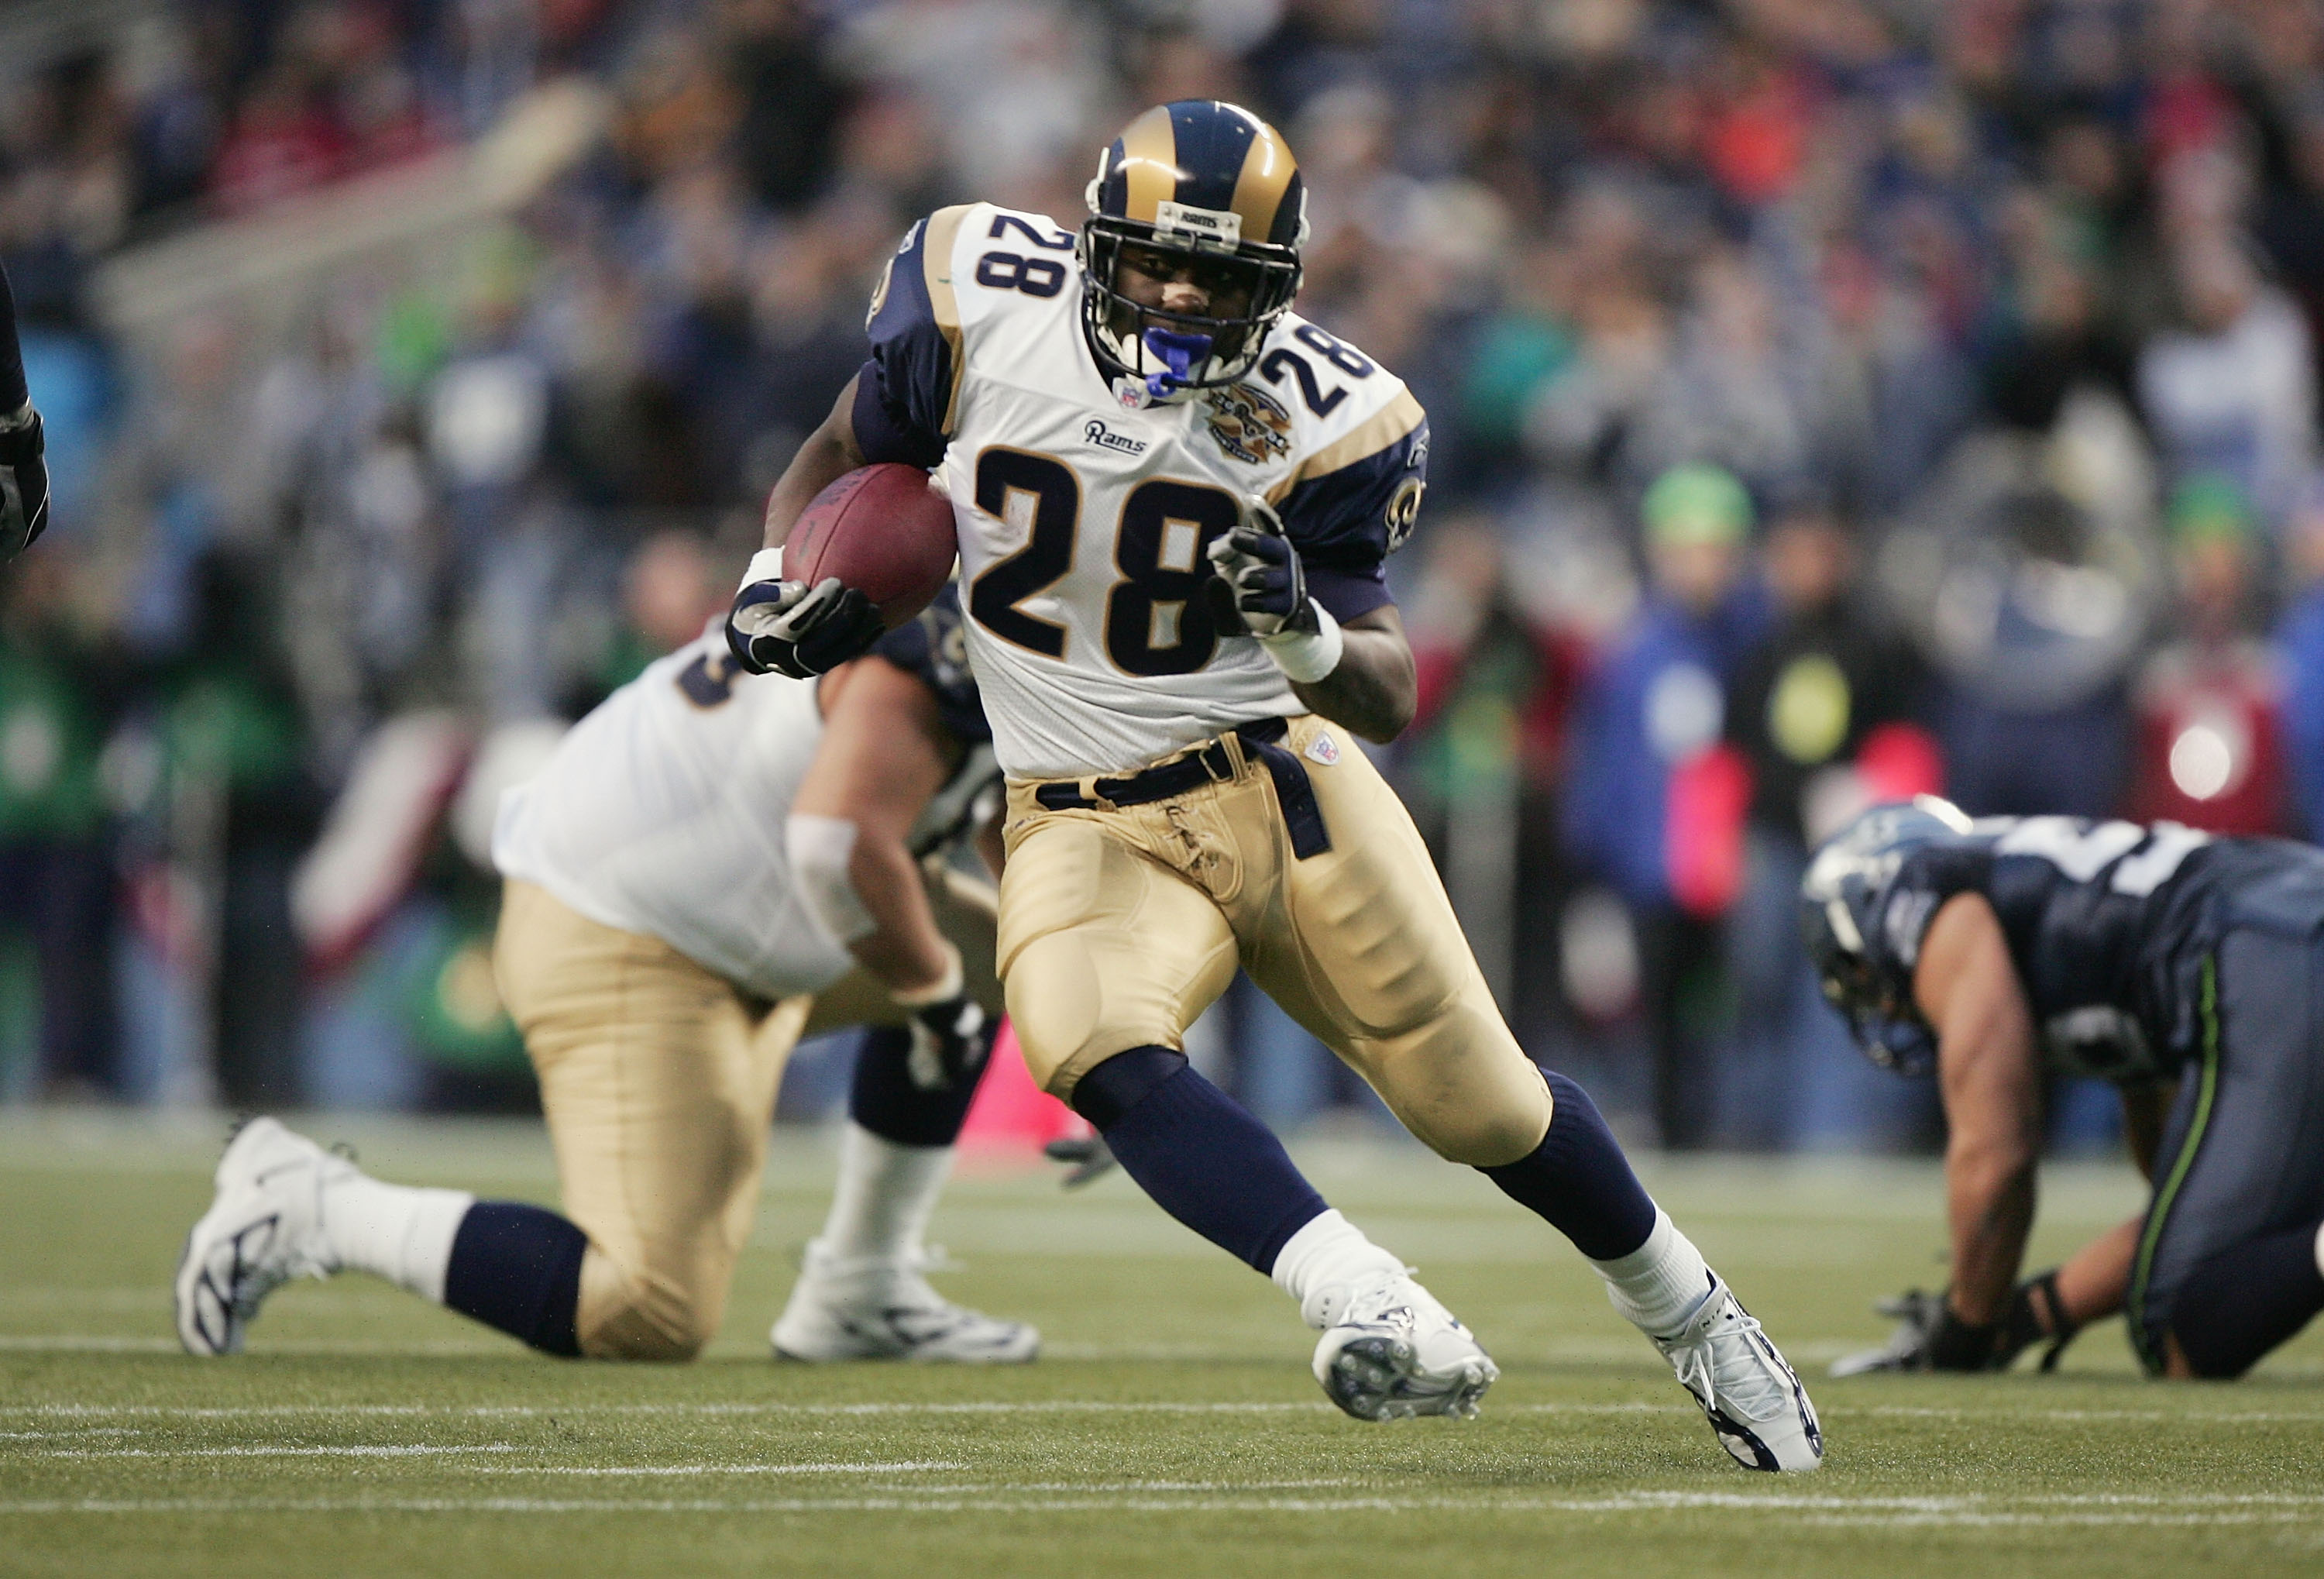 SEATTLE - JANUARY 8: Running back Marshall Faulk #28 of the St. Louis Rams looks for room to run against the Seattle Seahawks in the NFC wild-card game at Qwest Field on January 8, 2005 in Seattle, Washington. The Rams defeated the Seahawks 27-20. (Photo